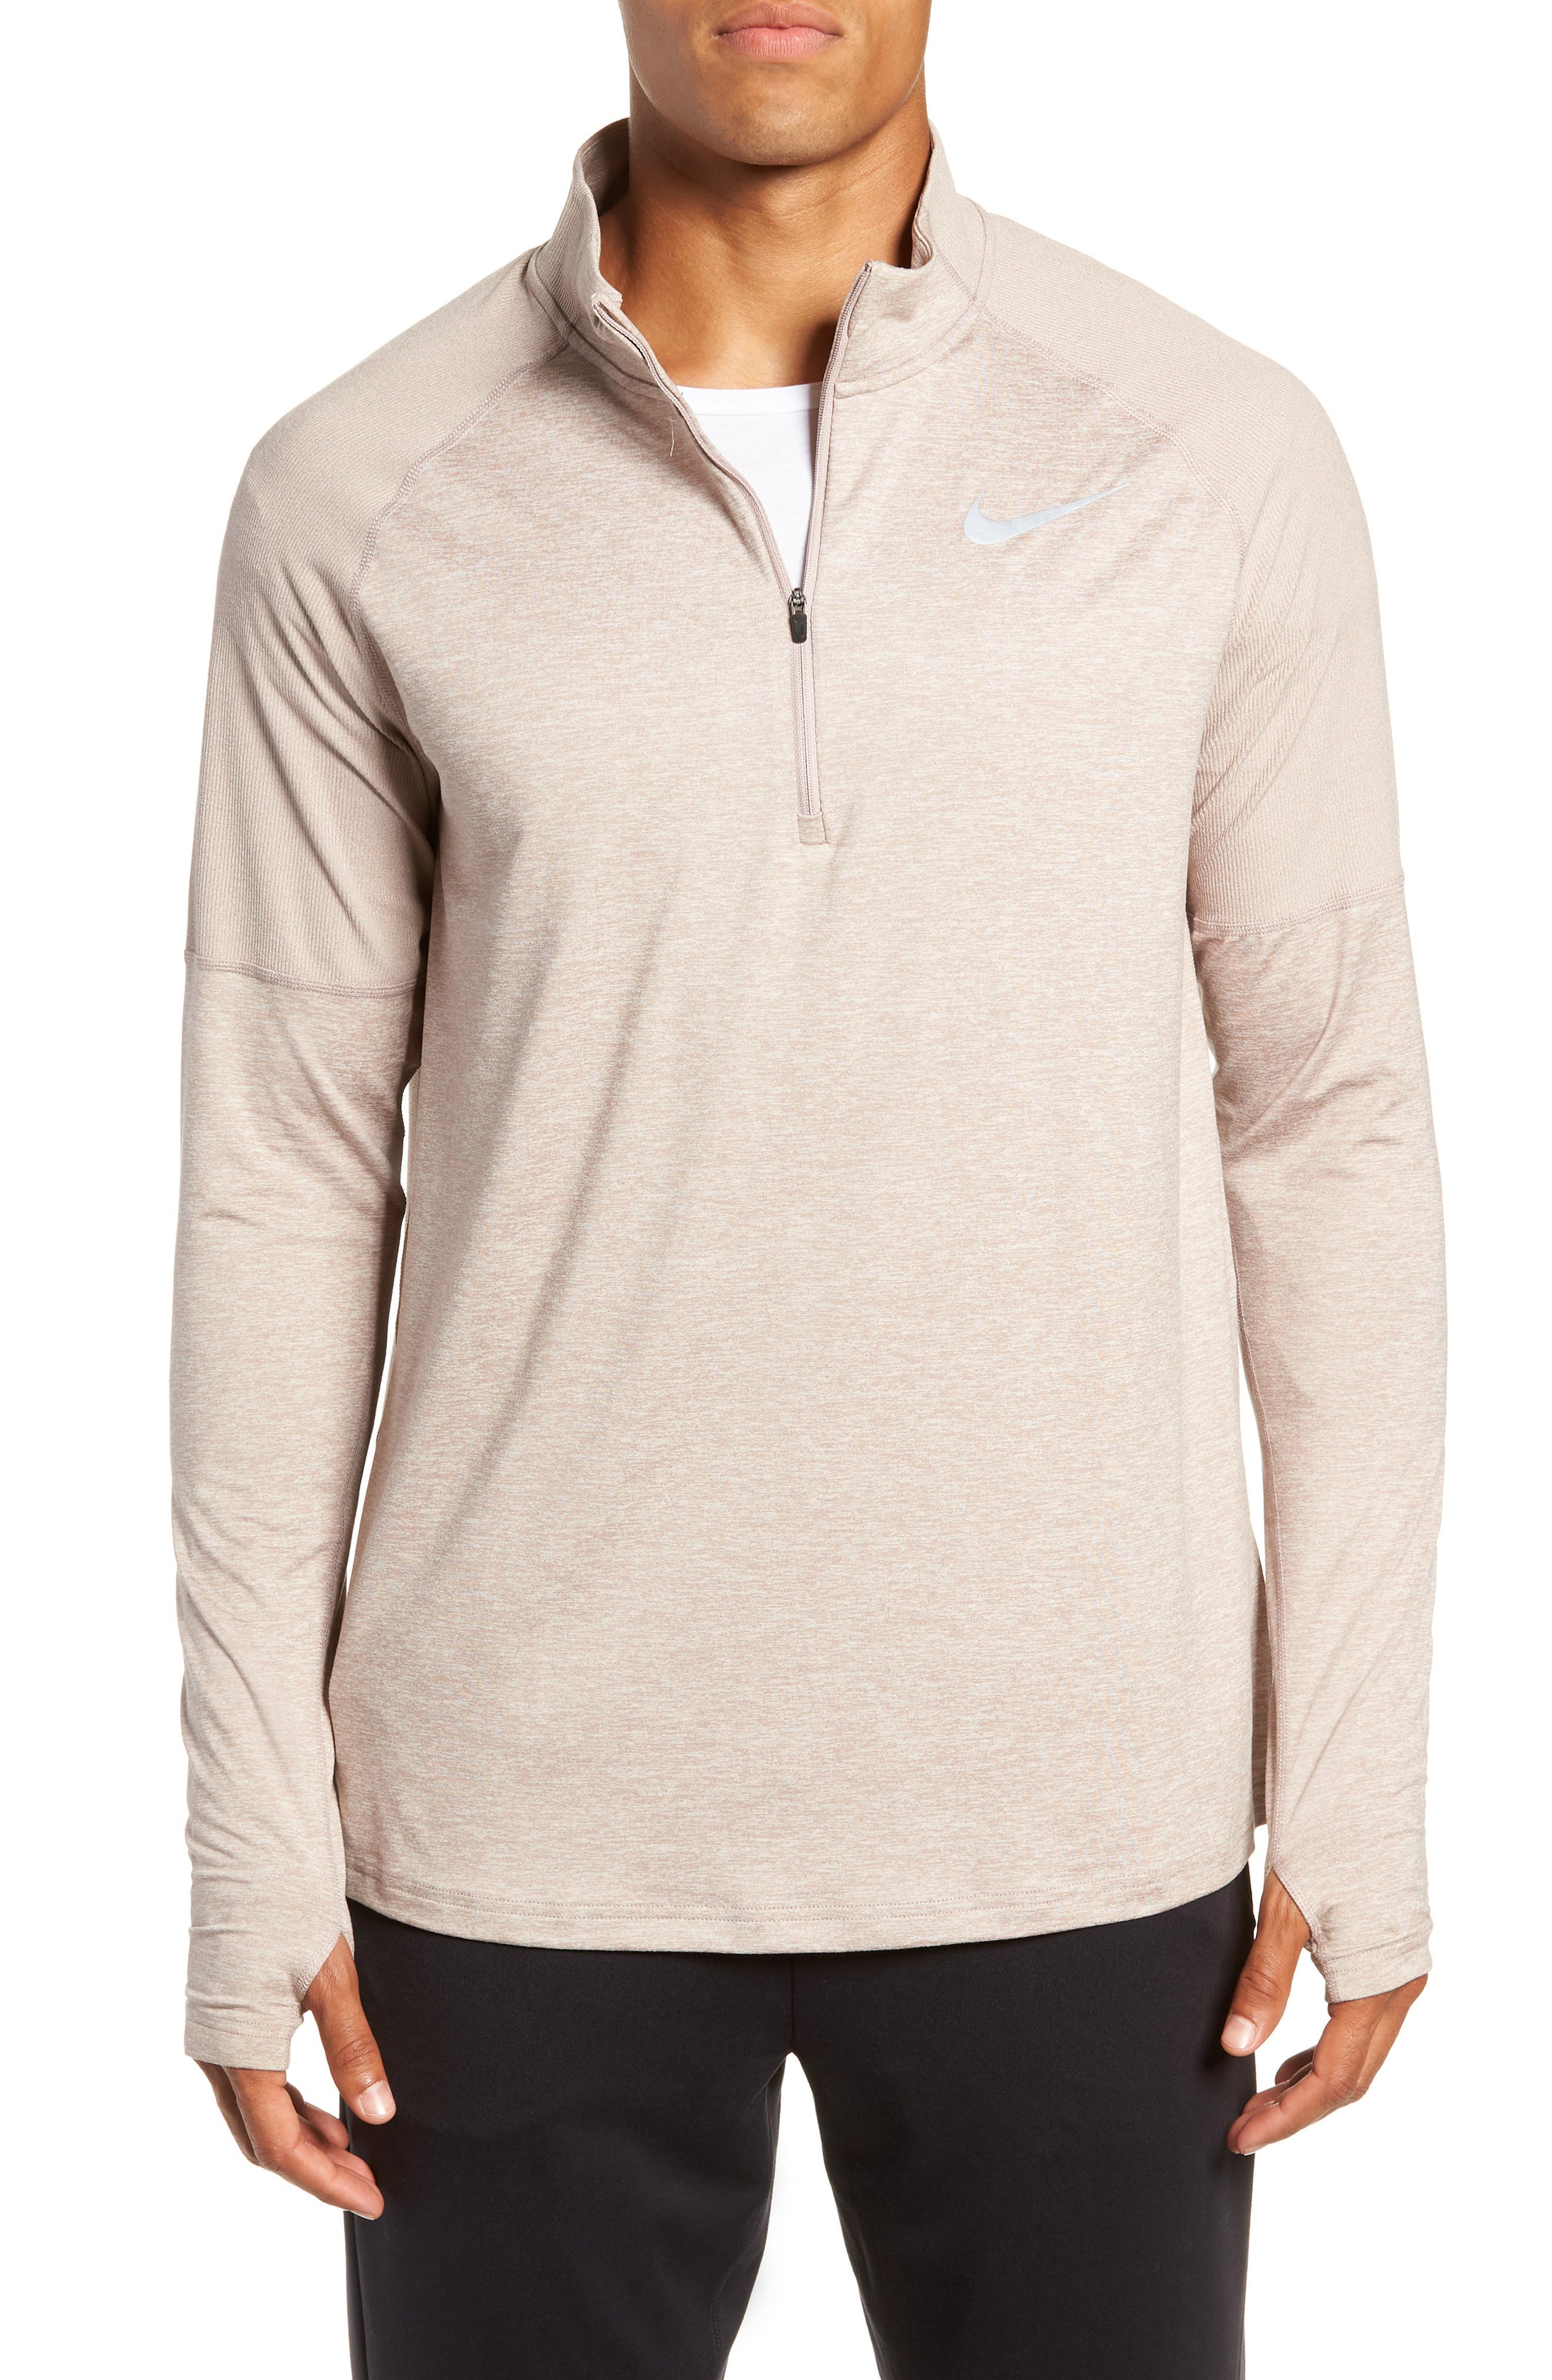 Element HZ 2.0 Performance Pullover,                             Main thumbnail 1, color,                             DIFFUSED TAUPE/ SAND/ HEATHER